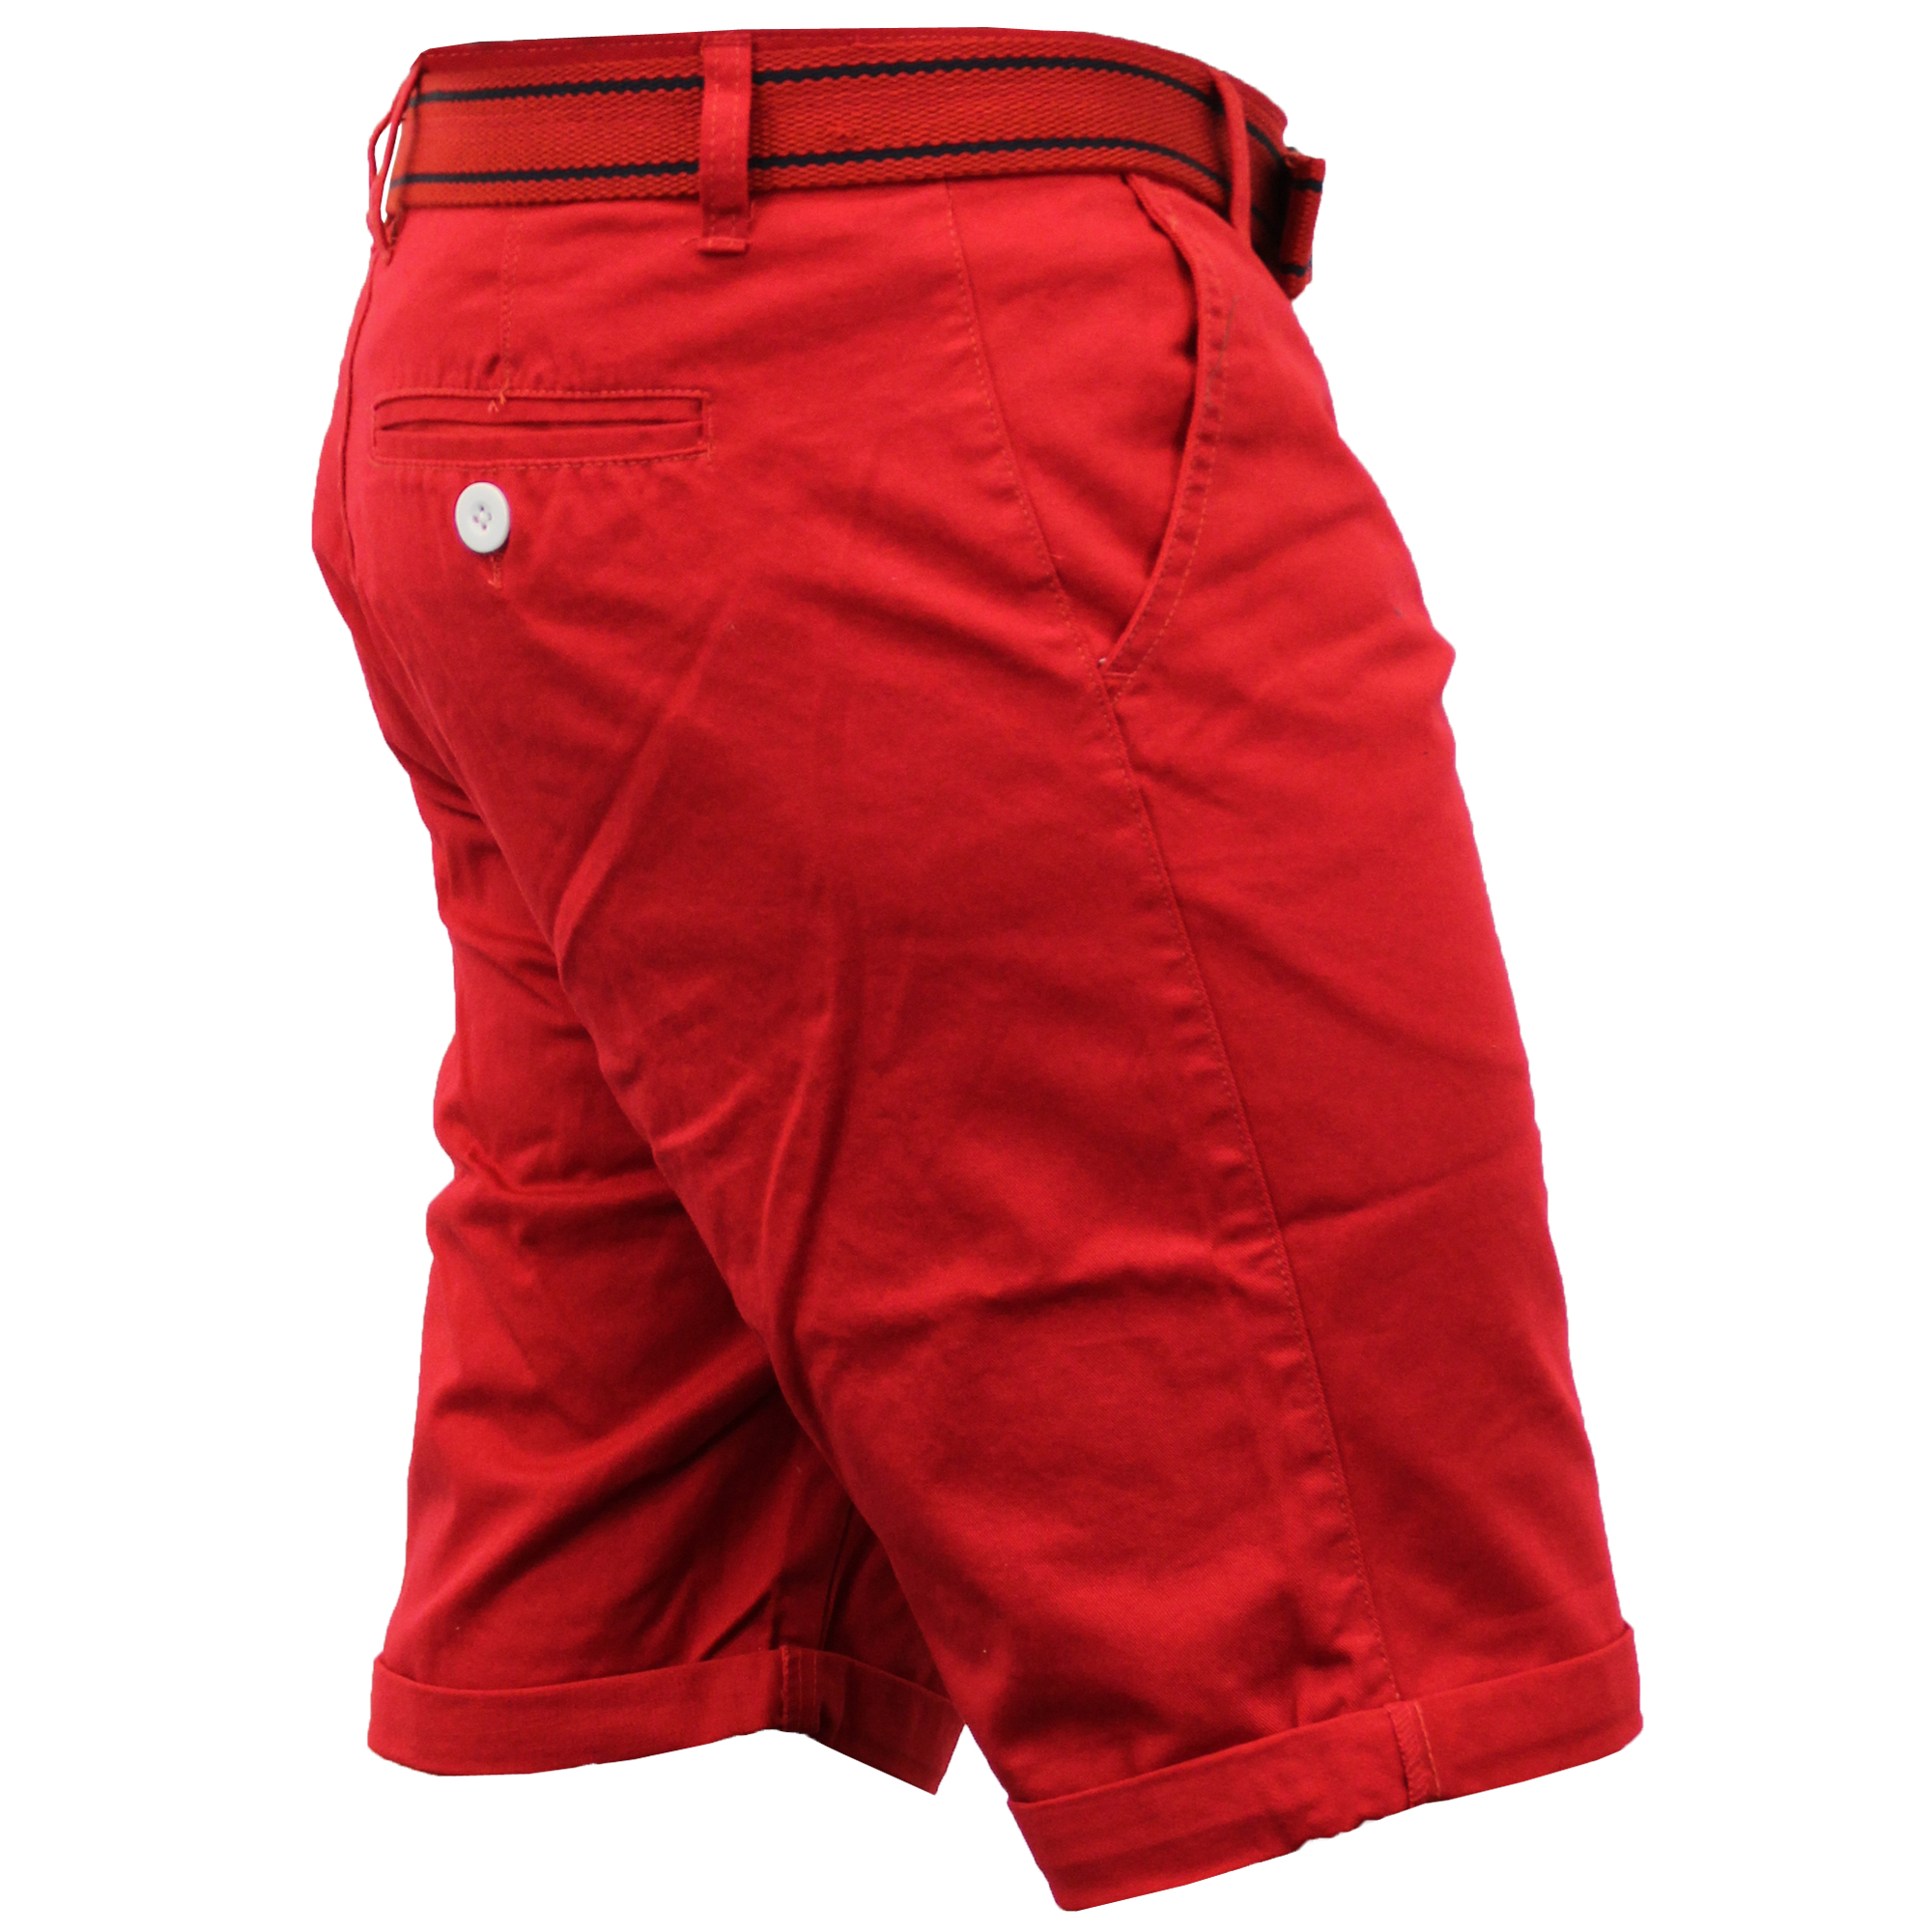 Mens-Chino-Shorts-Threadbare-Cotton-Oxford-Belted-Loyalty-amp-Faith-Seven-Series thumbnail 39